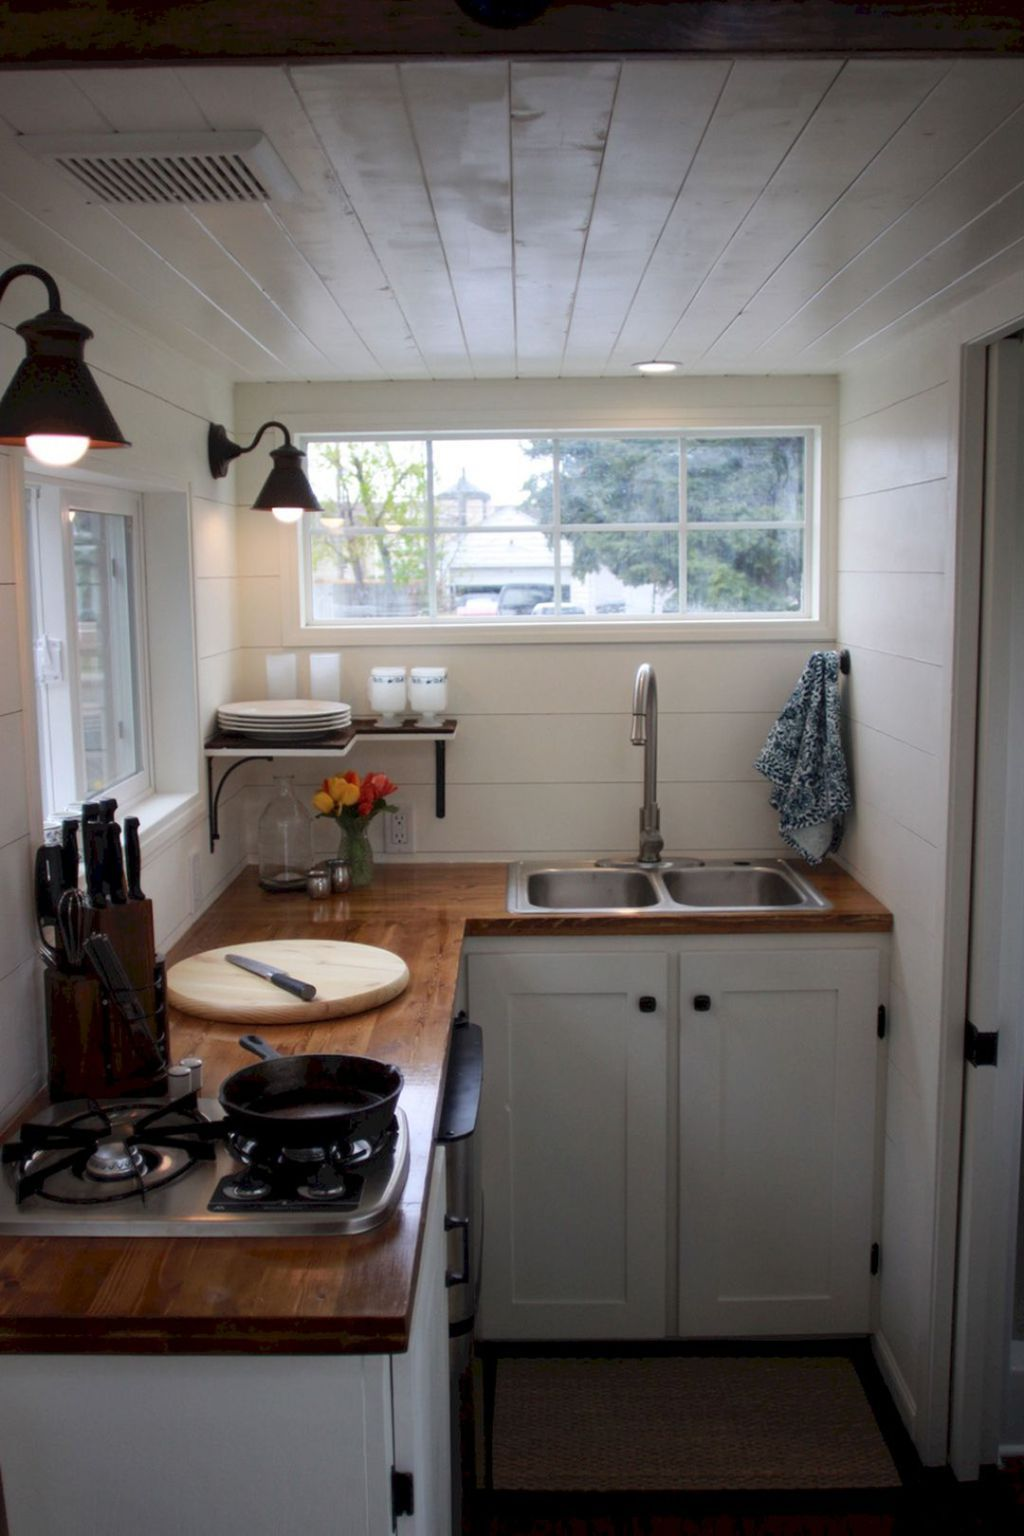 Awesome Tiny Kitchen Design For Your Beautiful Tiny House 610